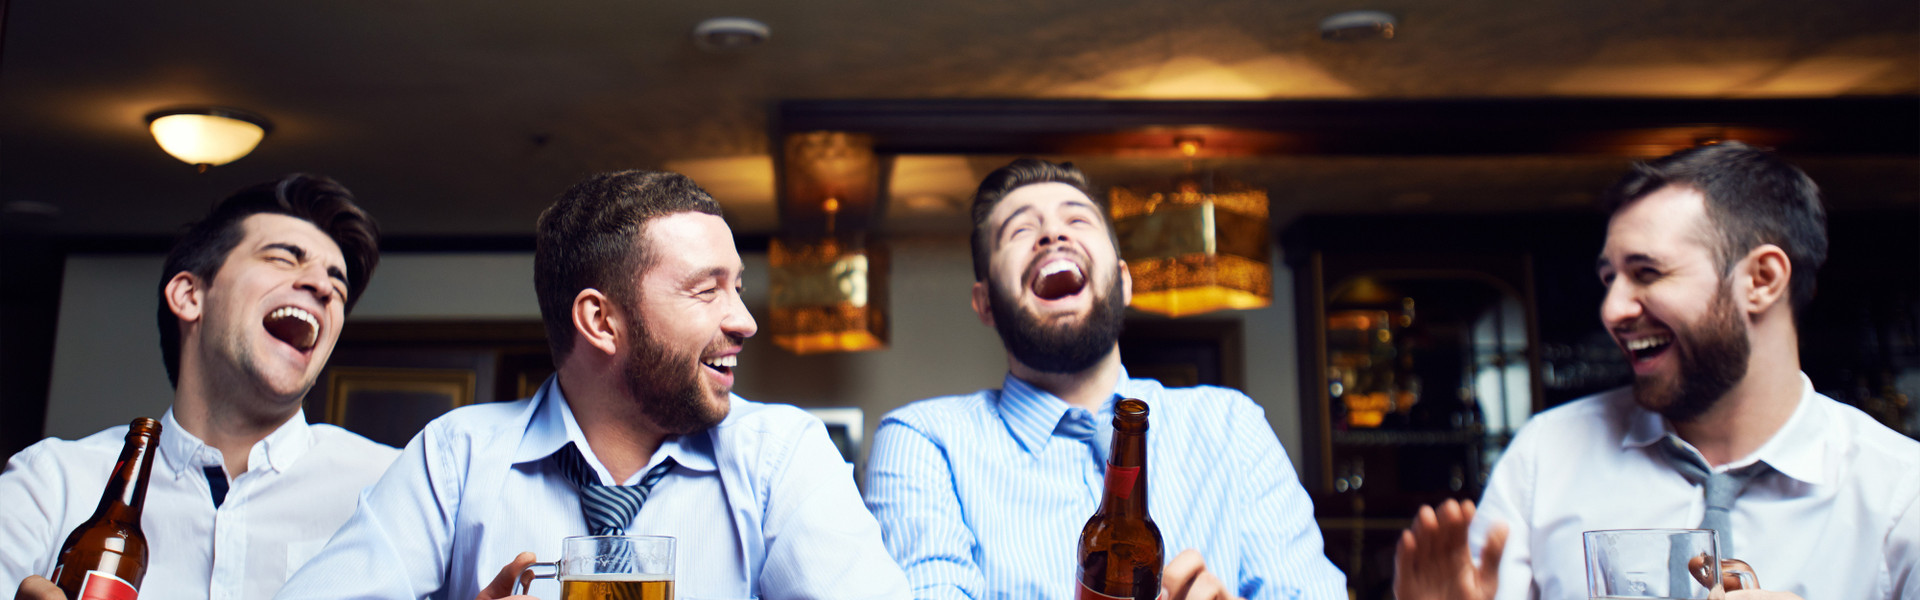 A Fraternity Formal Hotel In NYC | Group of guys celebrating with beers